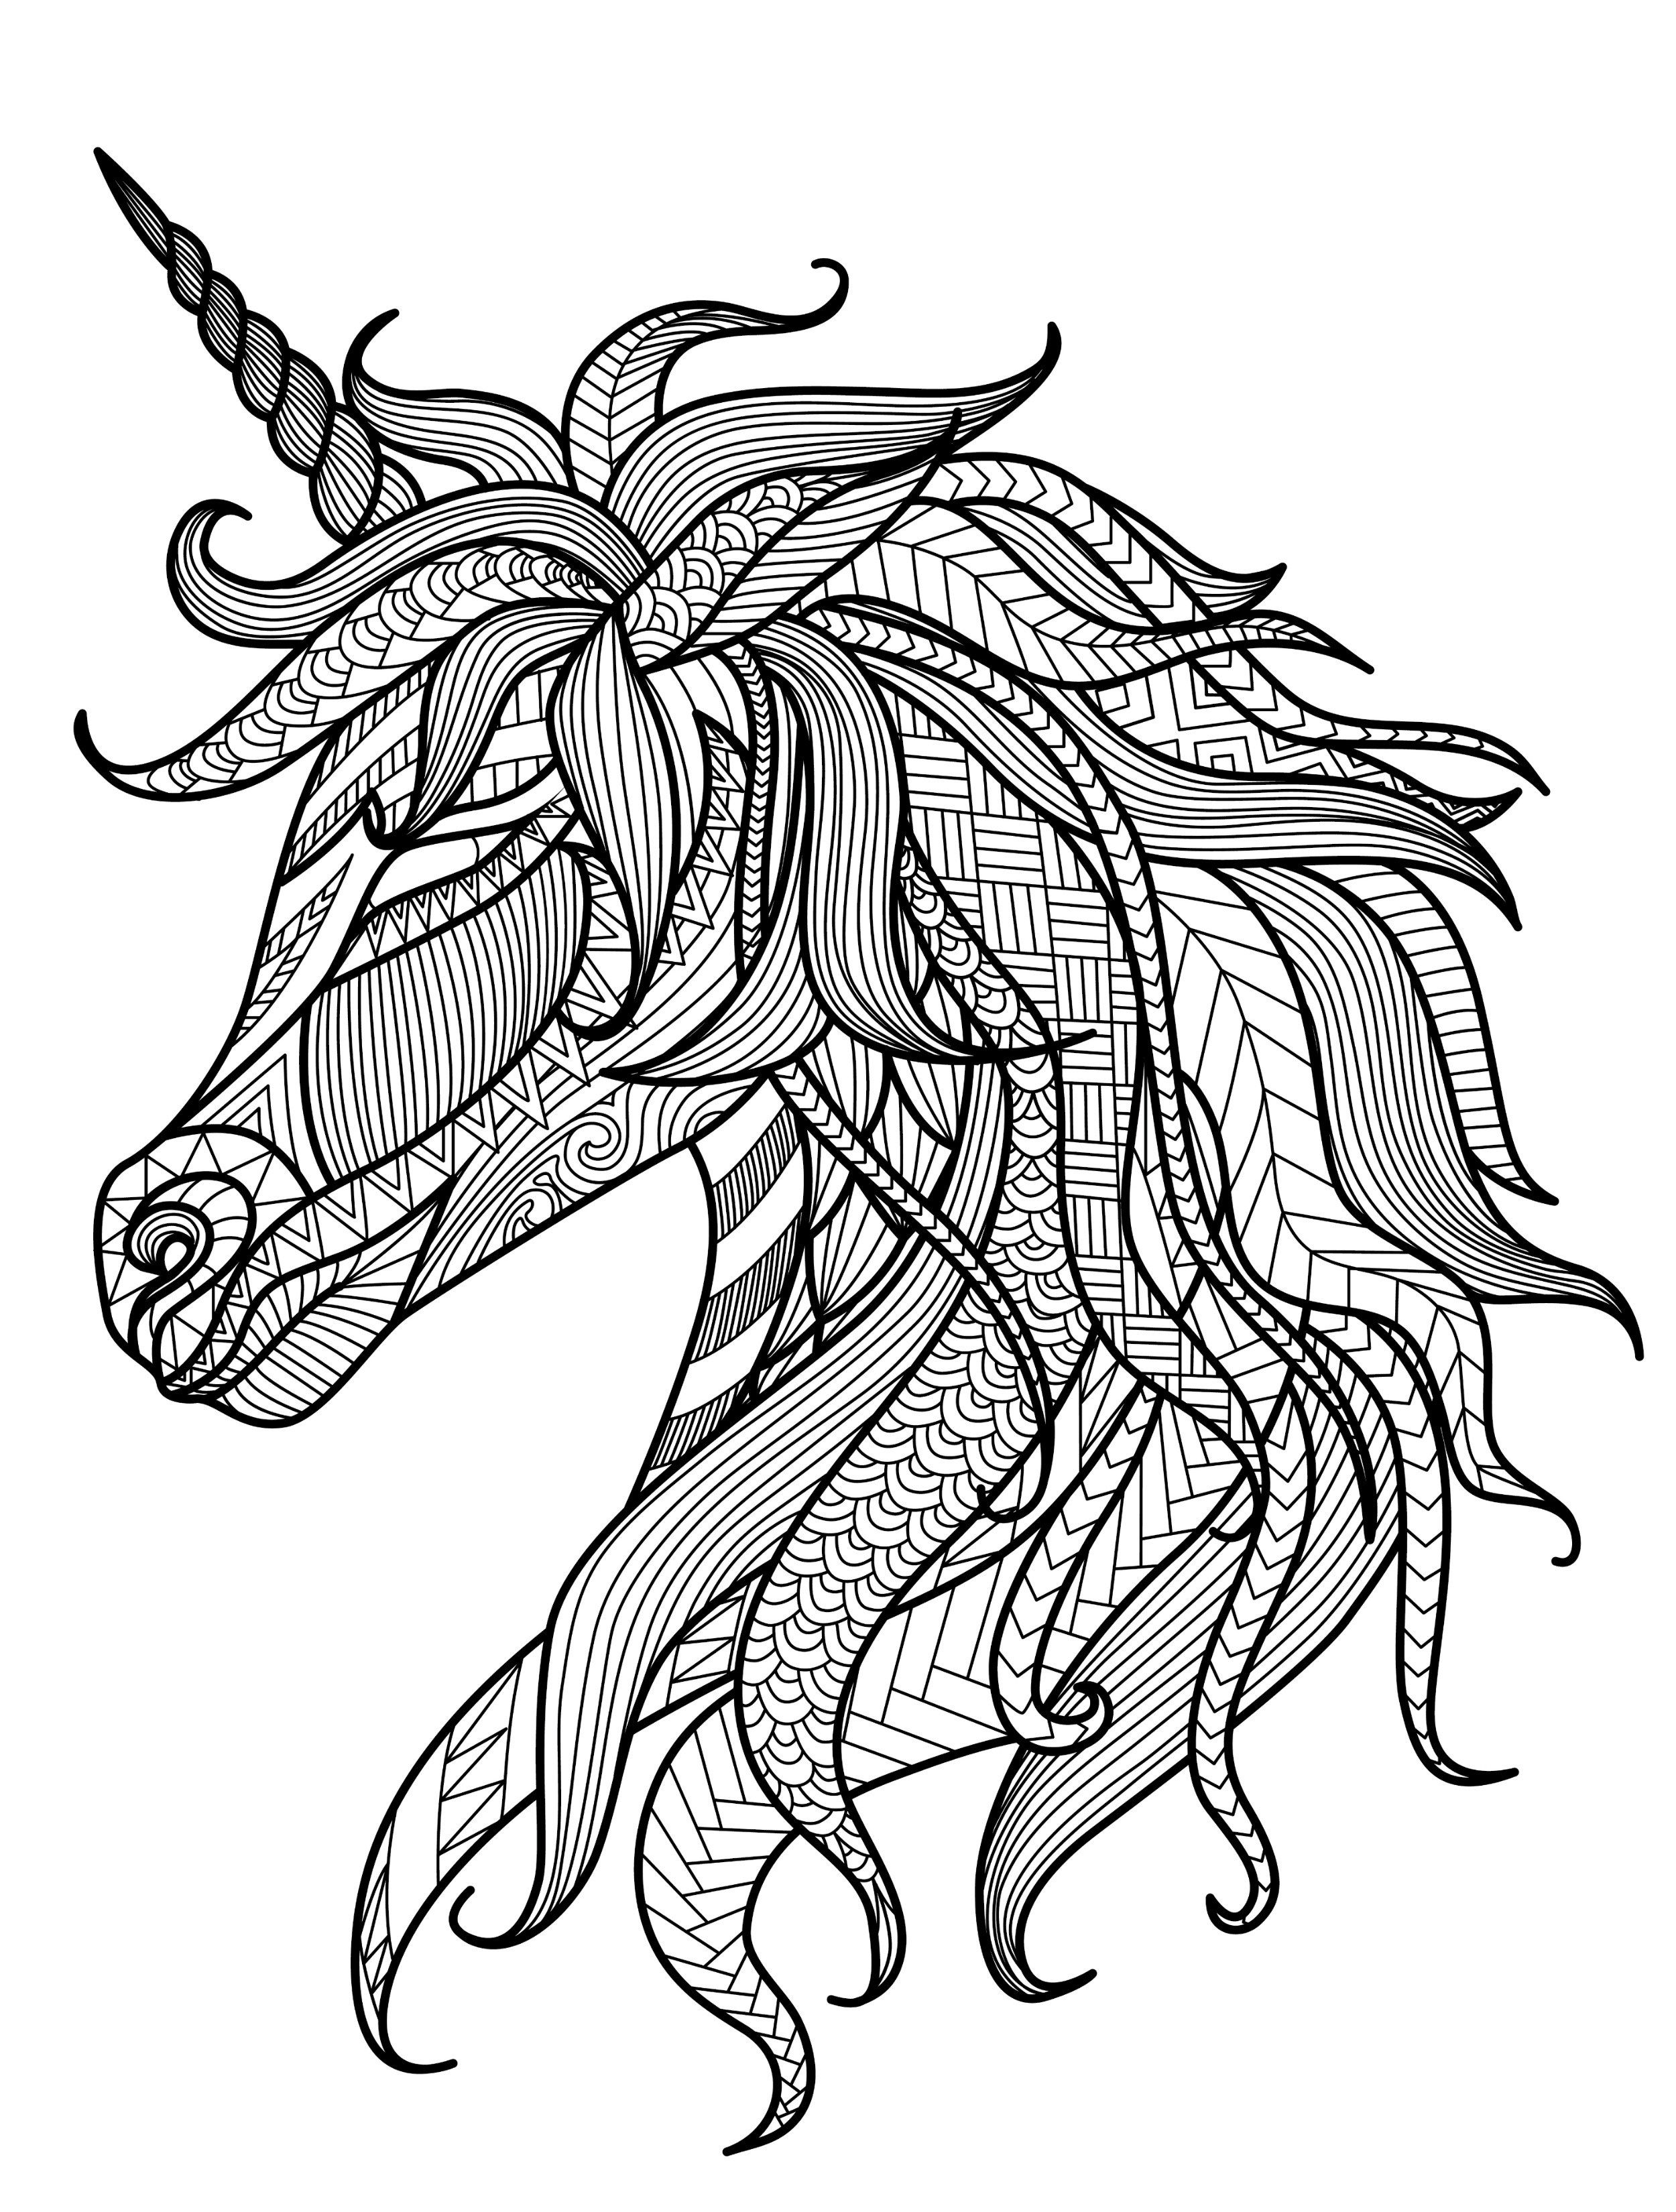 Unicorn adult coloring page - free downloadable … | Pinteres…